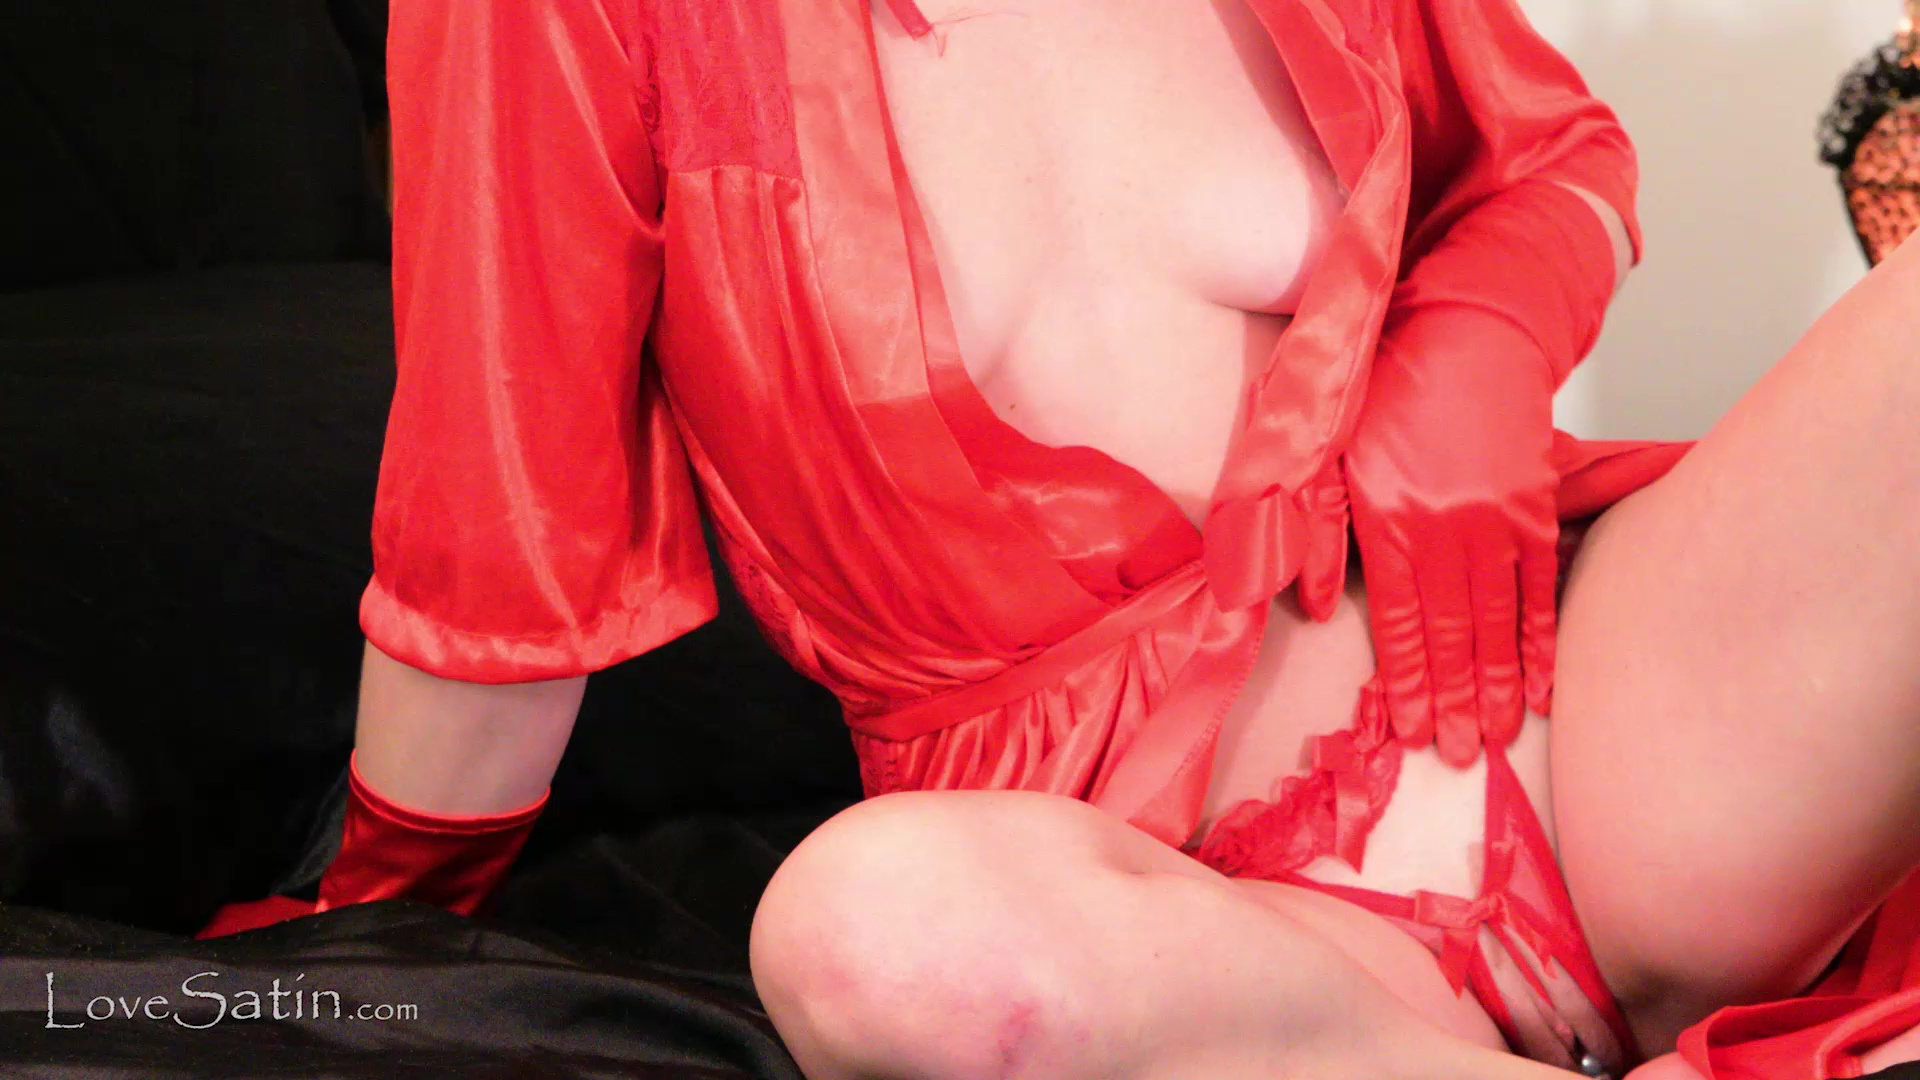 content/Lucy/Red Satin Lingerie JOI - Lucy/0.jpg